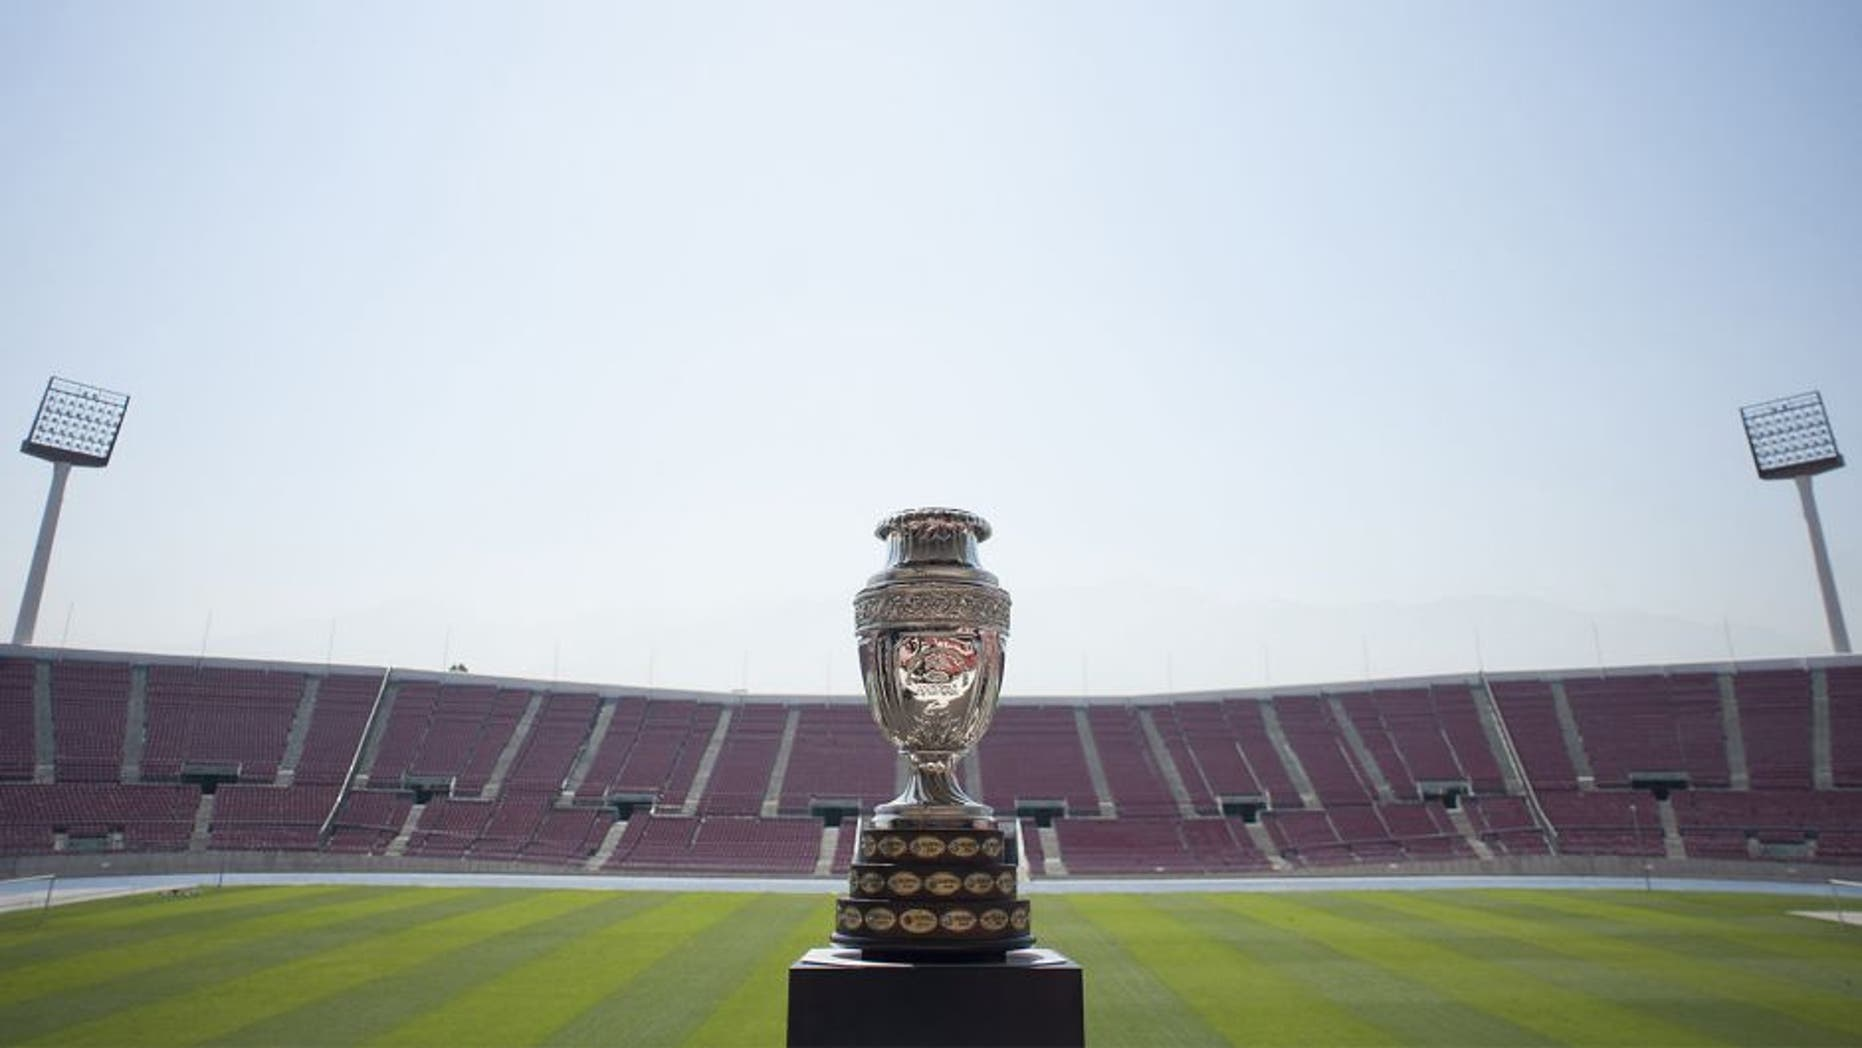 The trophy of the Copa America Chile 2015 is seen at the National Stadium of Chile during the opening ceremony of the Trophy Tour in Santiago on January 14, 2015. The Trophy Tour will visit the 11 cities where the Copa America will take place. AFP PHOTO/Vladimir Rodas (Photo credit should read VLADIMIR RODAS/AFP/Getty Images)